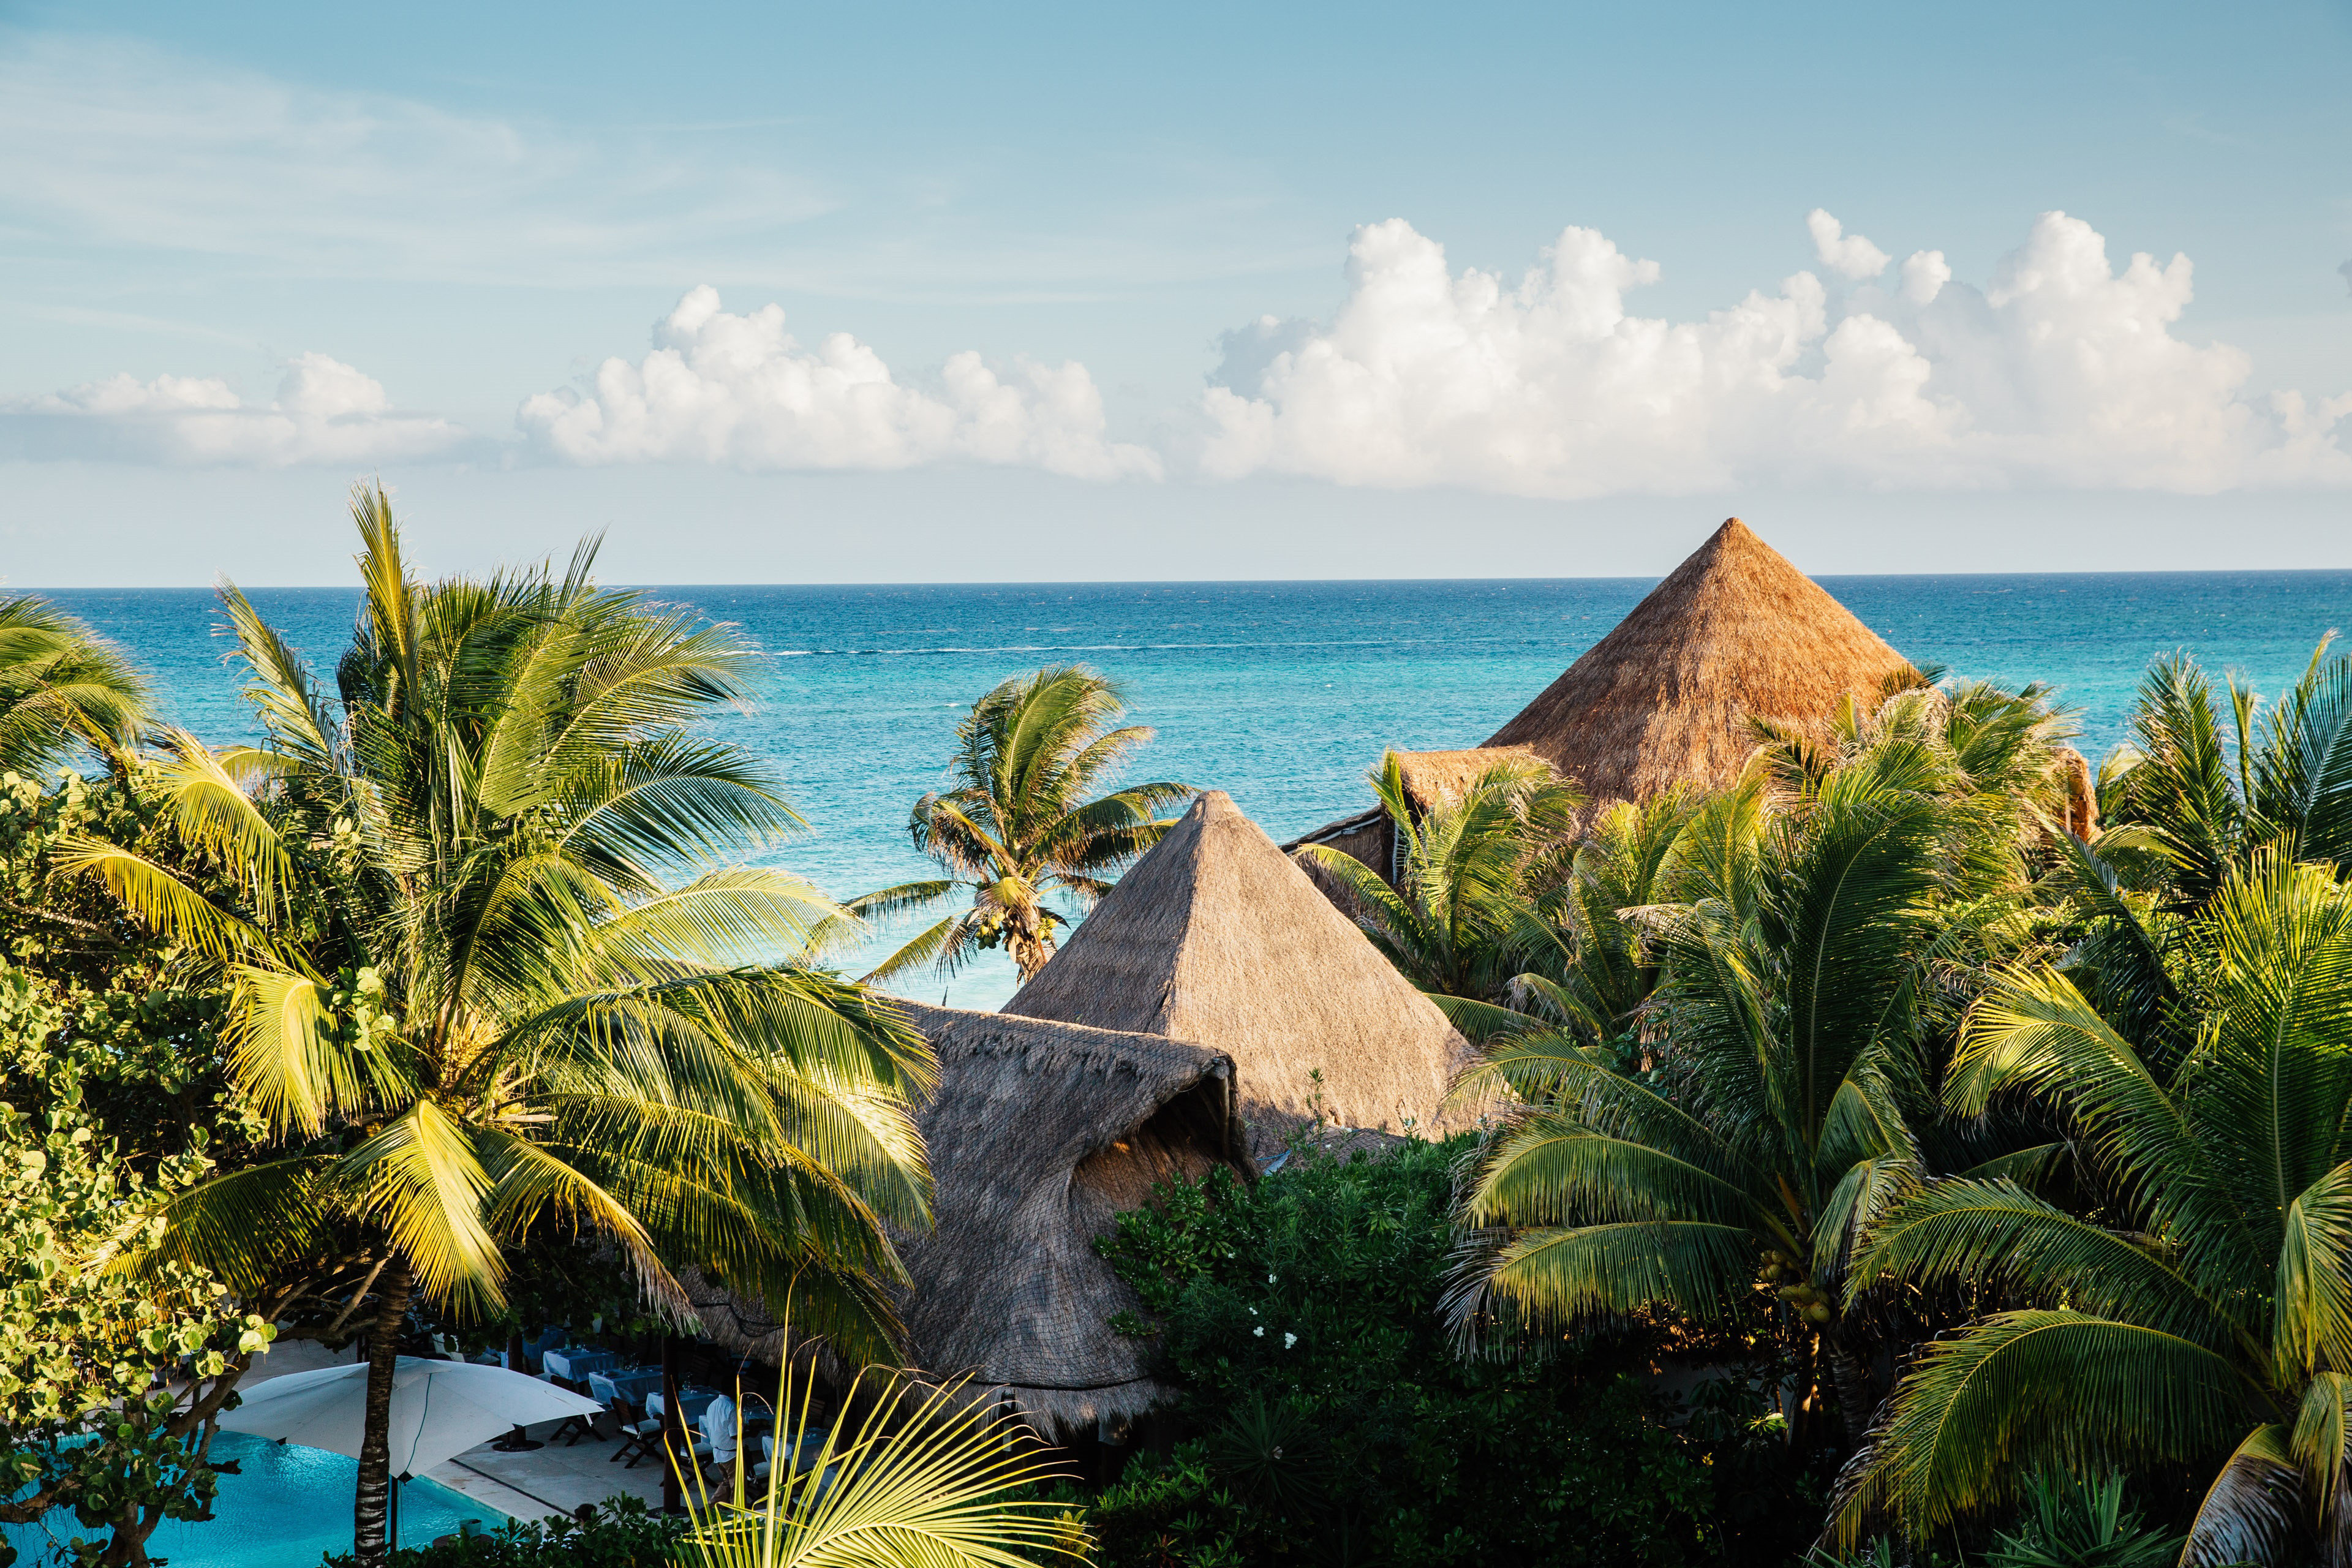 Beach Exterior Hotels Luxury News Ocean Rustic Scenic views Tropical sky outdoor water tree plant Sea geographical feature vacation caribbean body of water Coast shore tropics Nature arecales tourism bay cape Island Resort palm family Lagoon beautiful palm overlooking shade